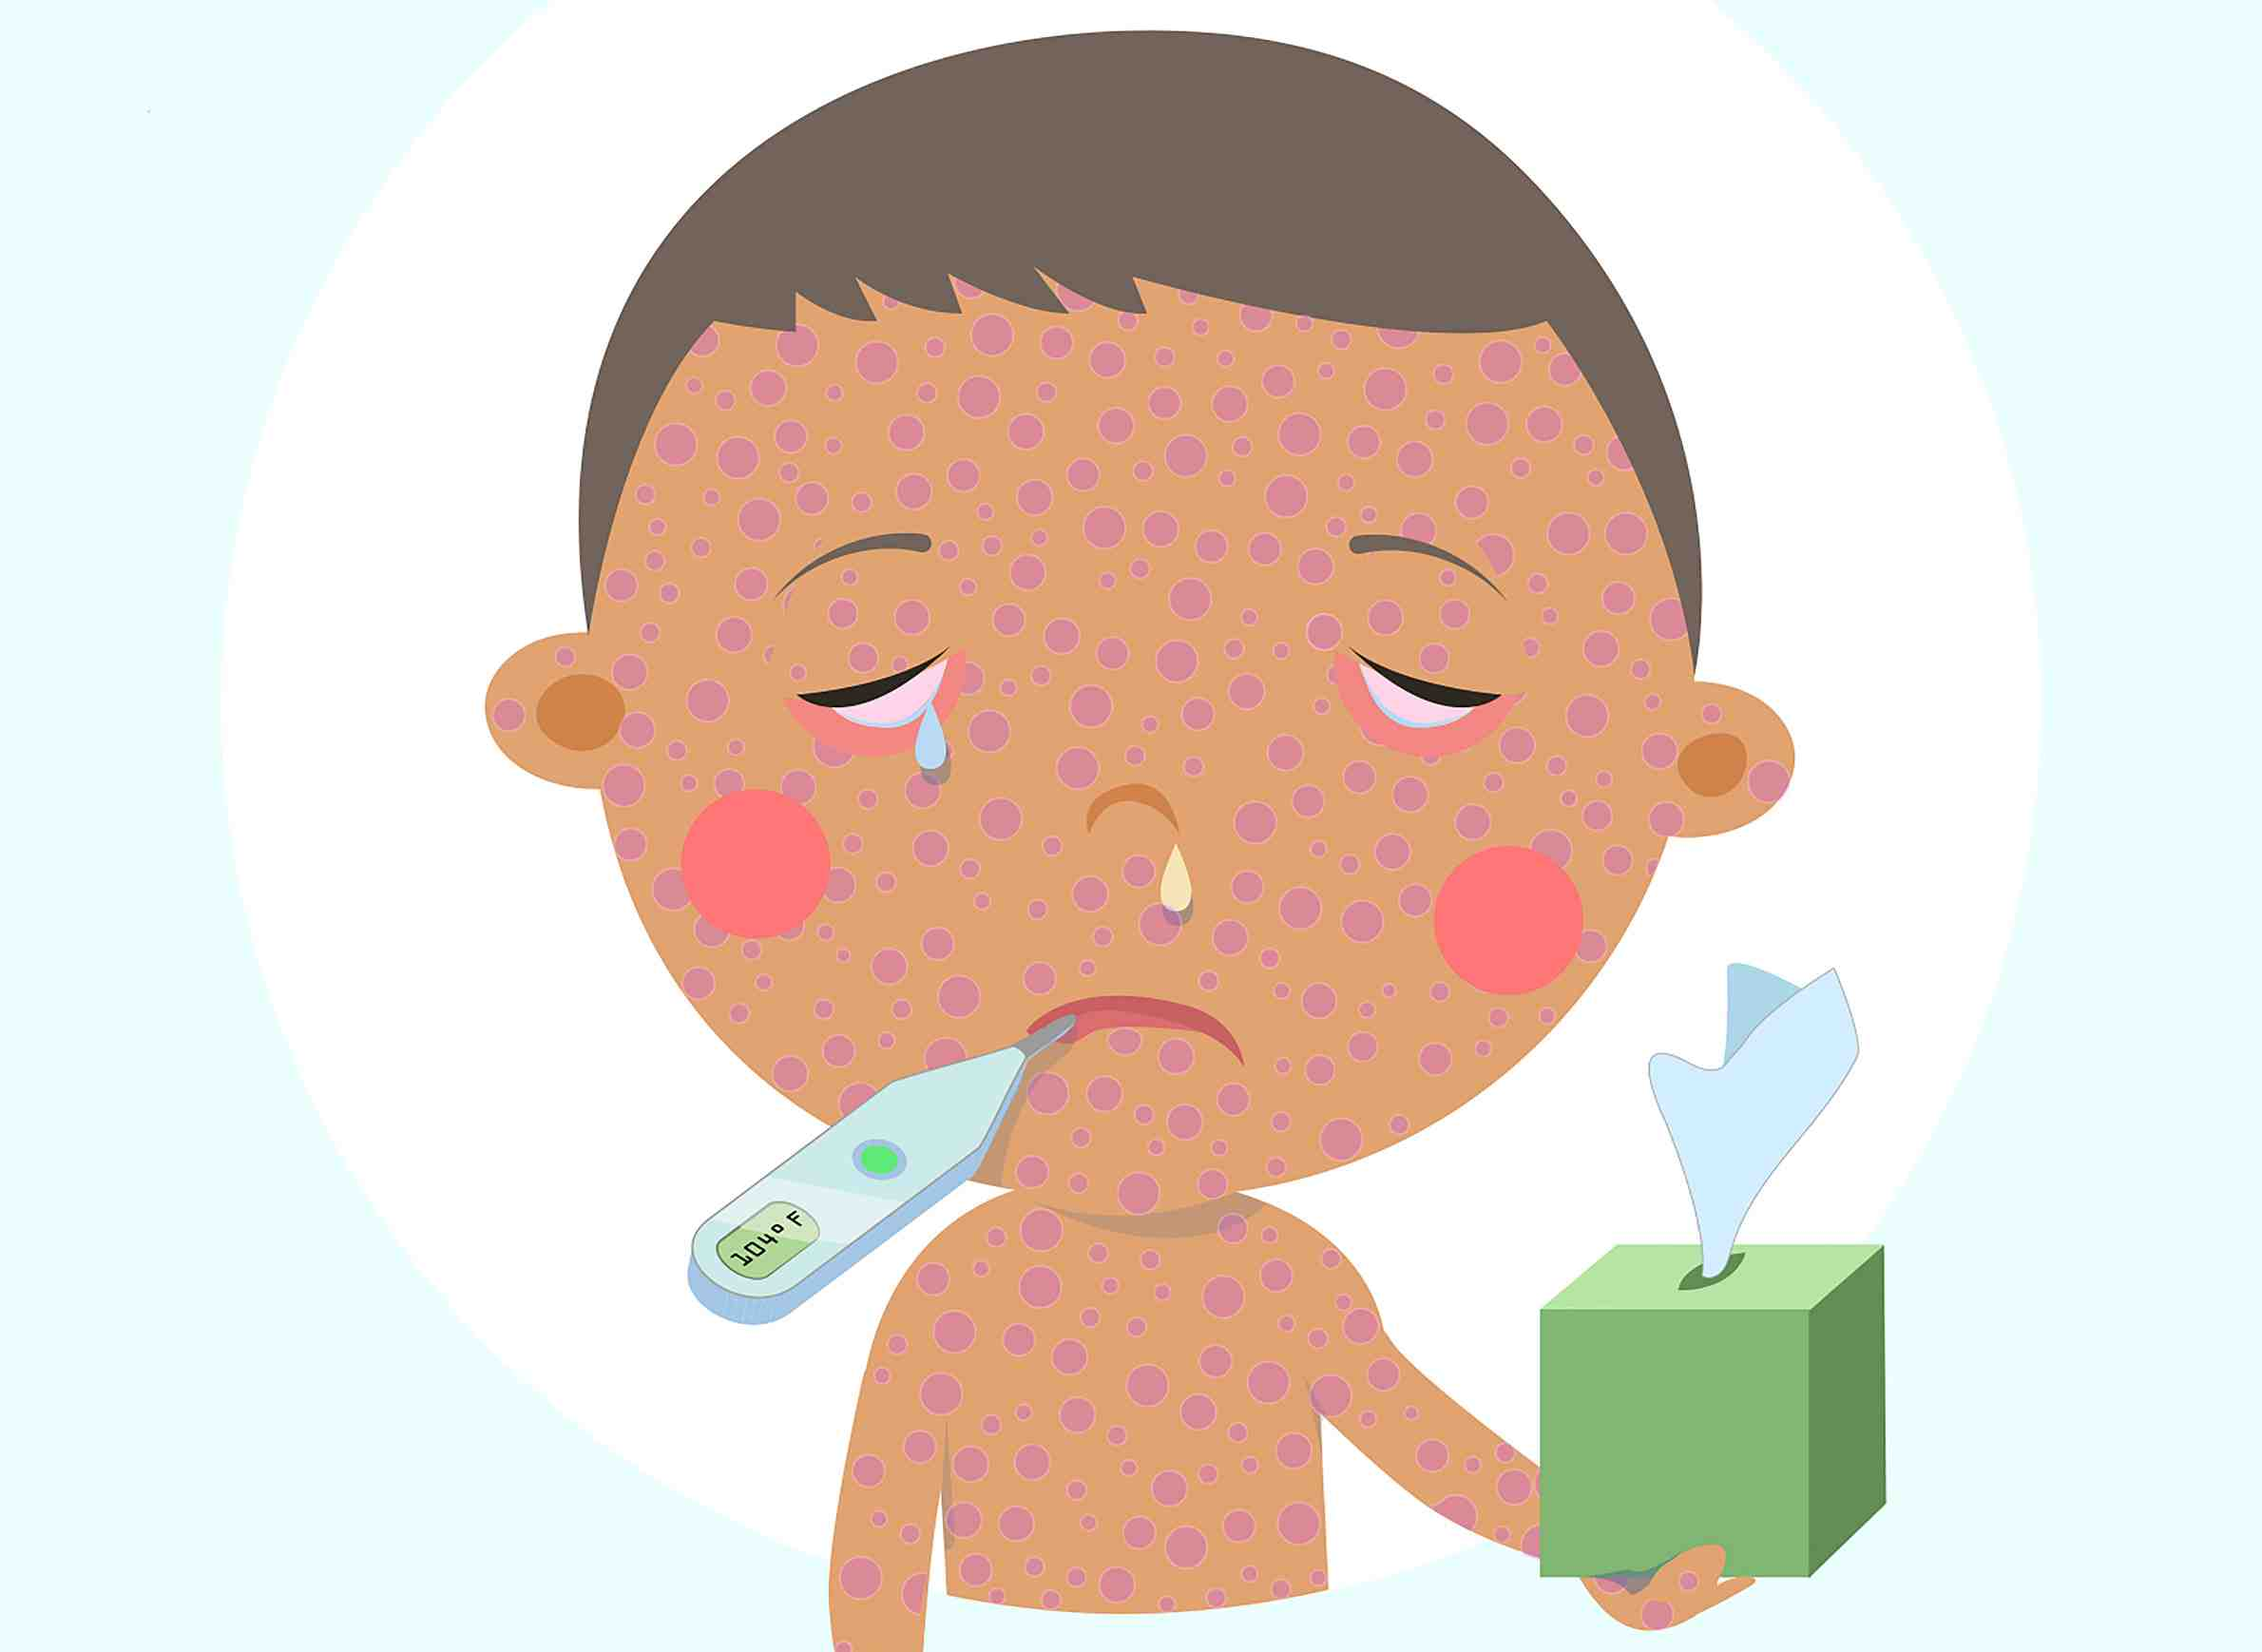 Centers for disease control and prevention clipart graphic free stock State Vulnerable to Measles Outbreak » Urban Milwaukee graphic free stock